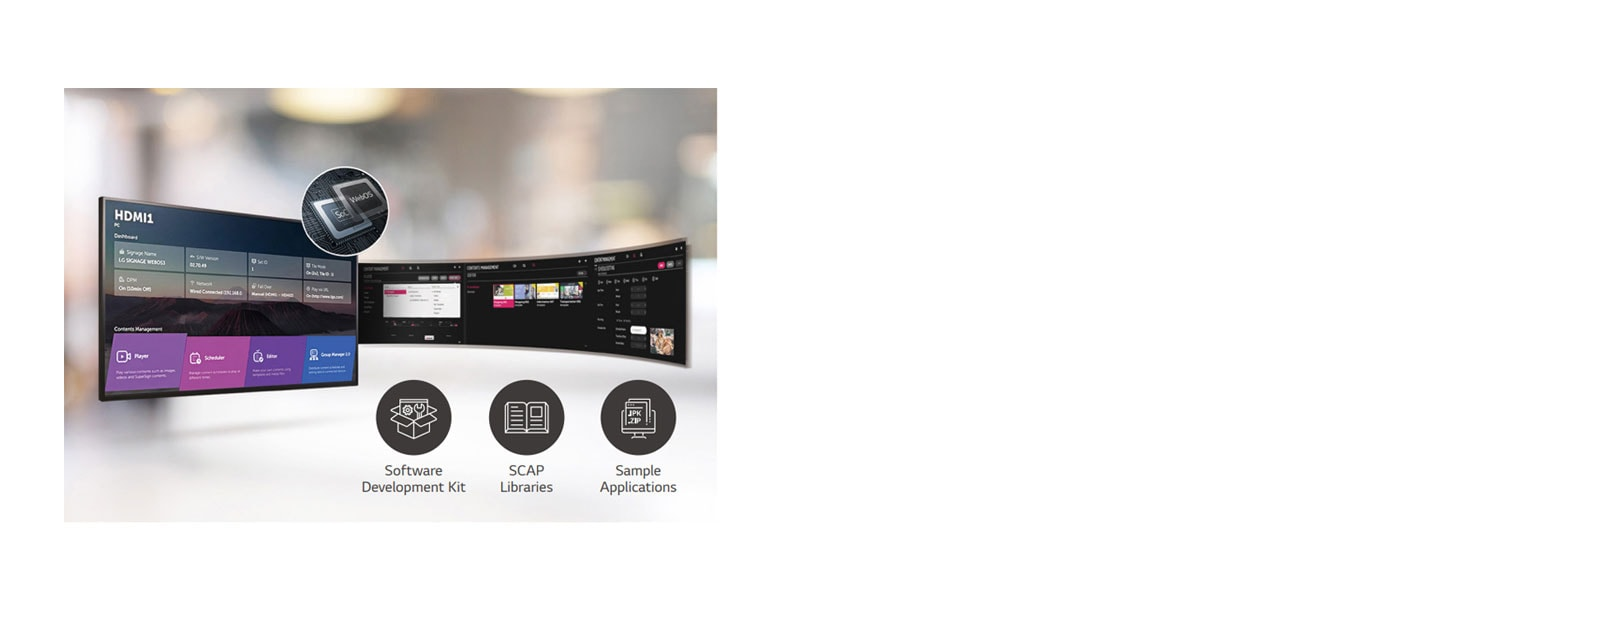 43UL3G-B Signage Monitor has Built-in Quad Core SoC with webOS 4.0